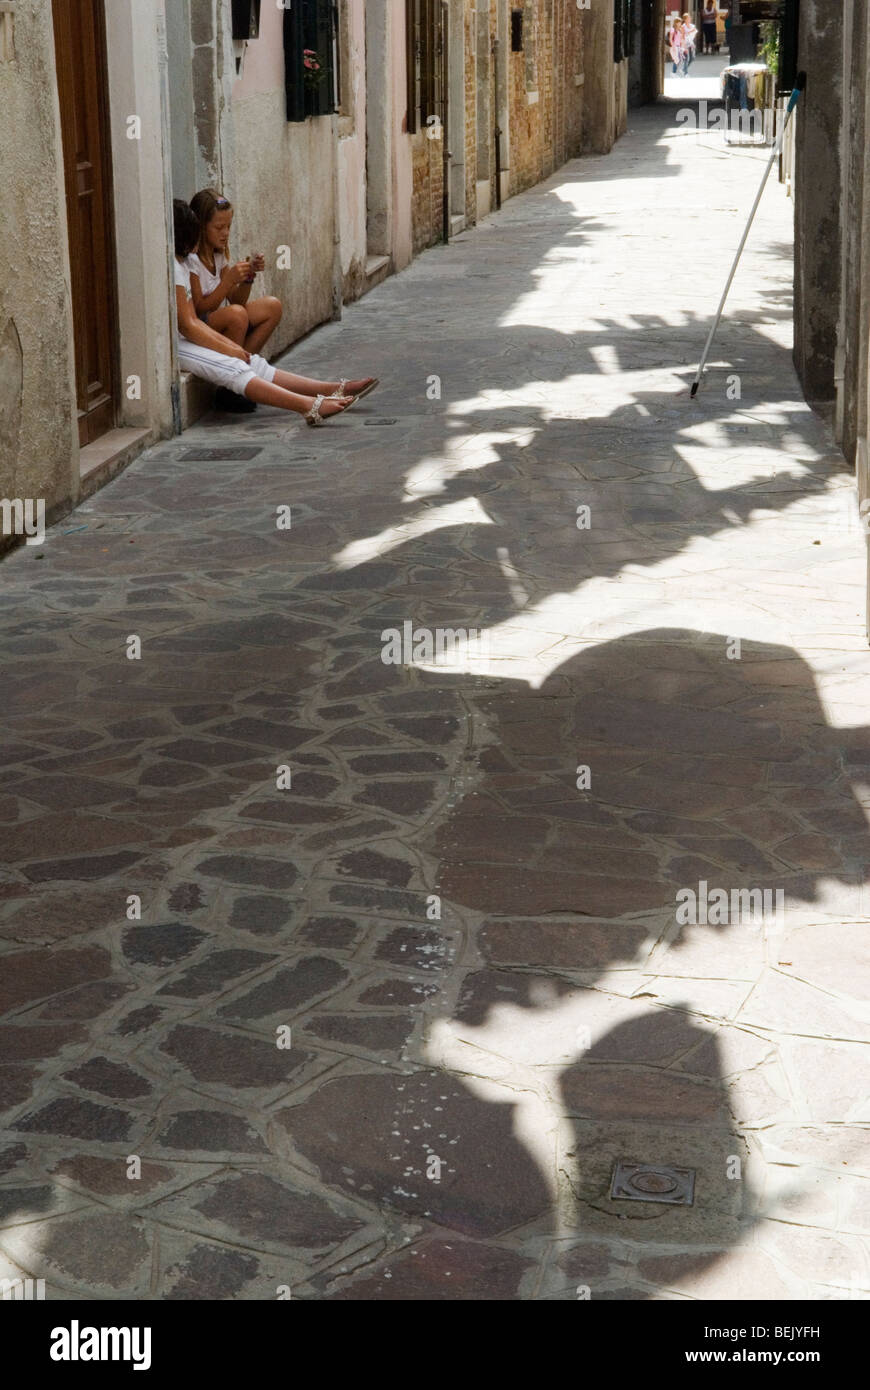 Venice Italy. Children in street between public housing washing hanging out to dry Arsenale Venice. HOMER SYKES - Stock Image